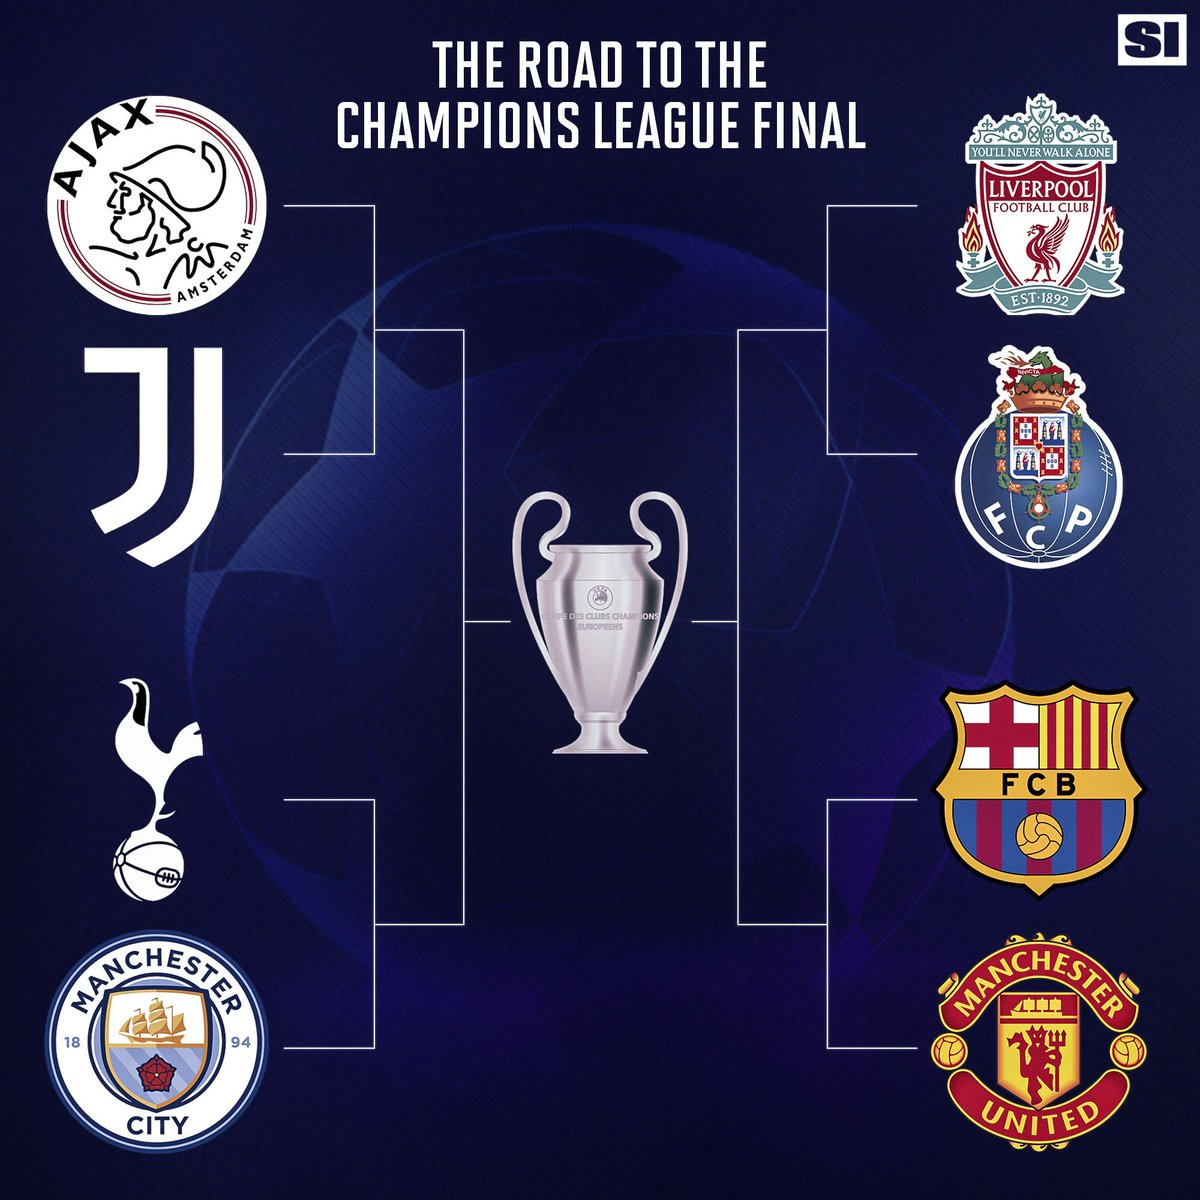 Planet Fútbol's photo on Champions League